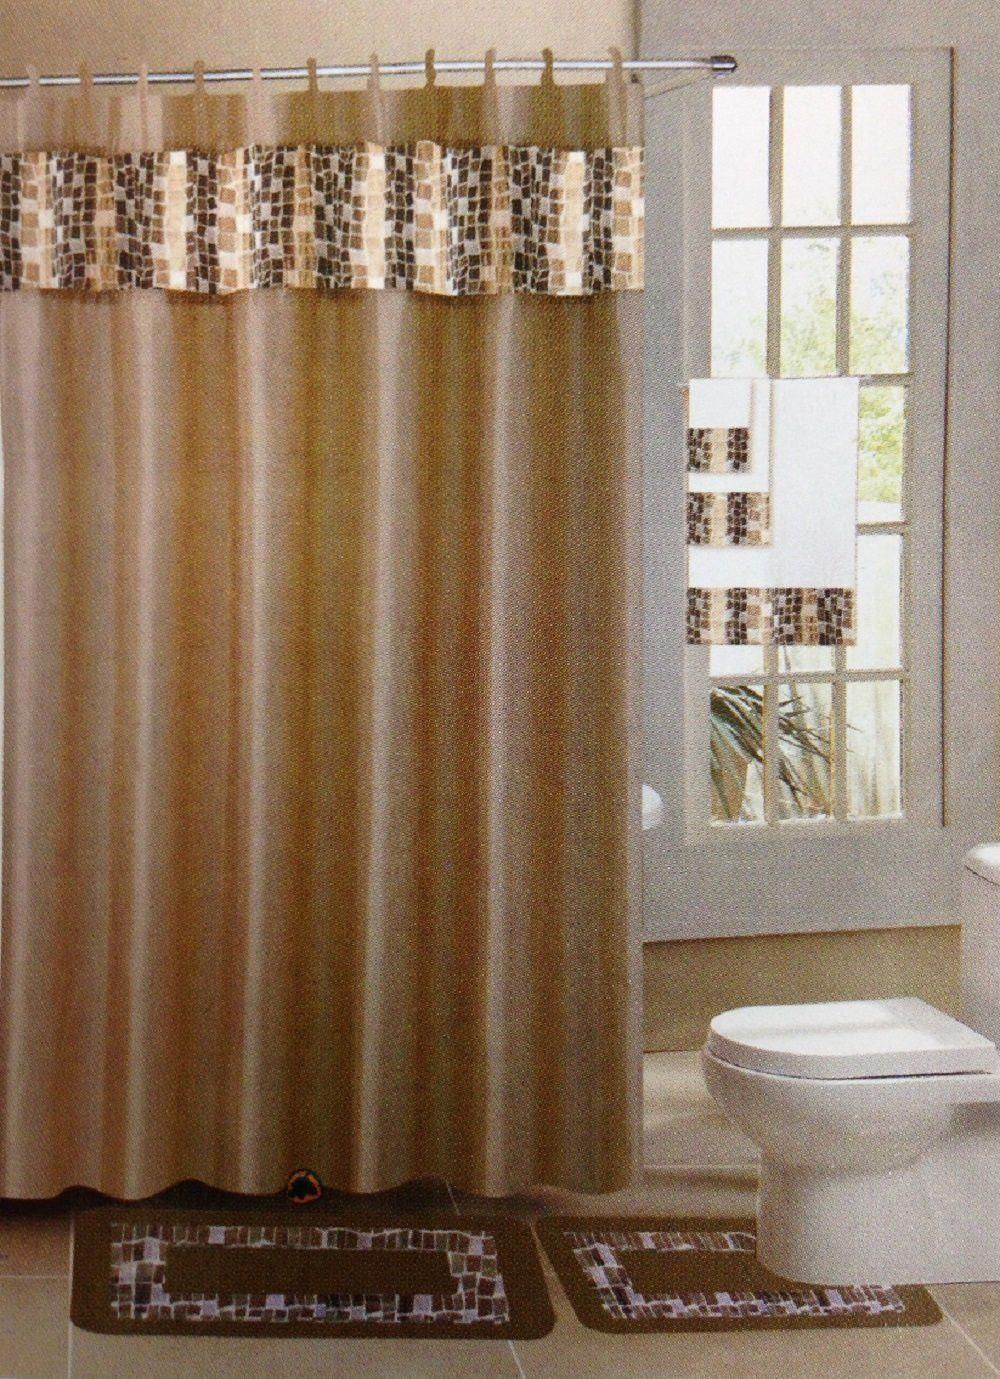 Gold And Cream Bathroom Set Rosegoldbathroomsets Funny Shower